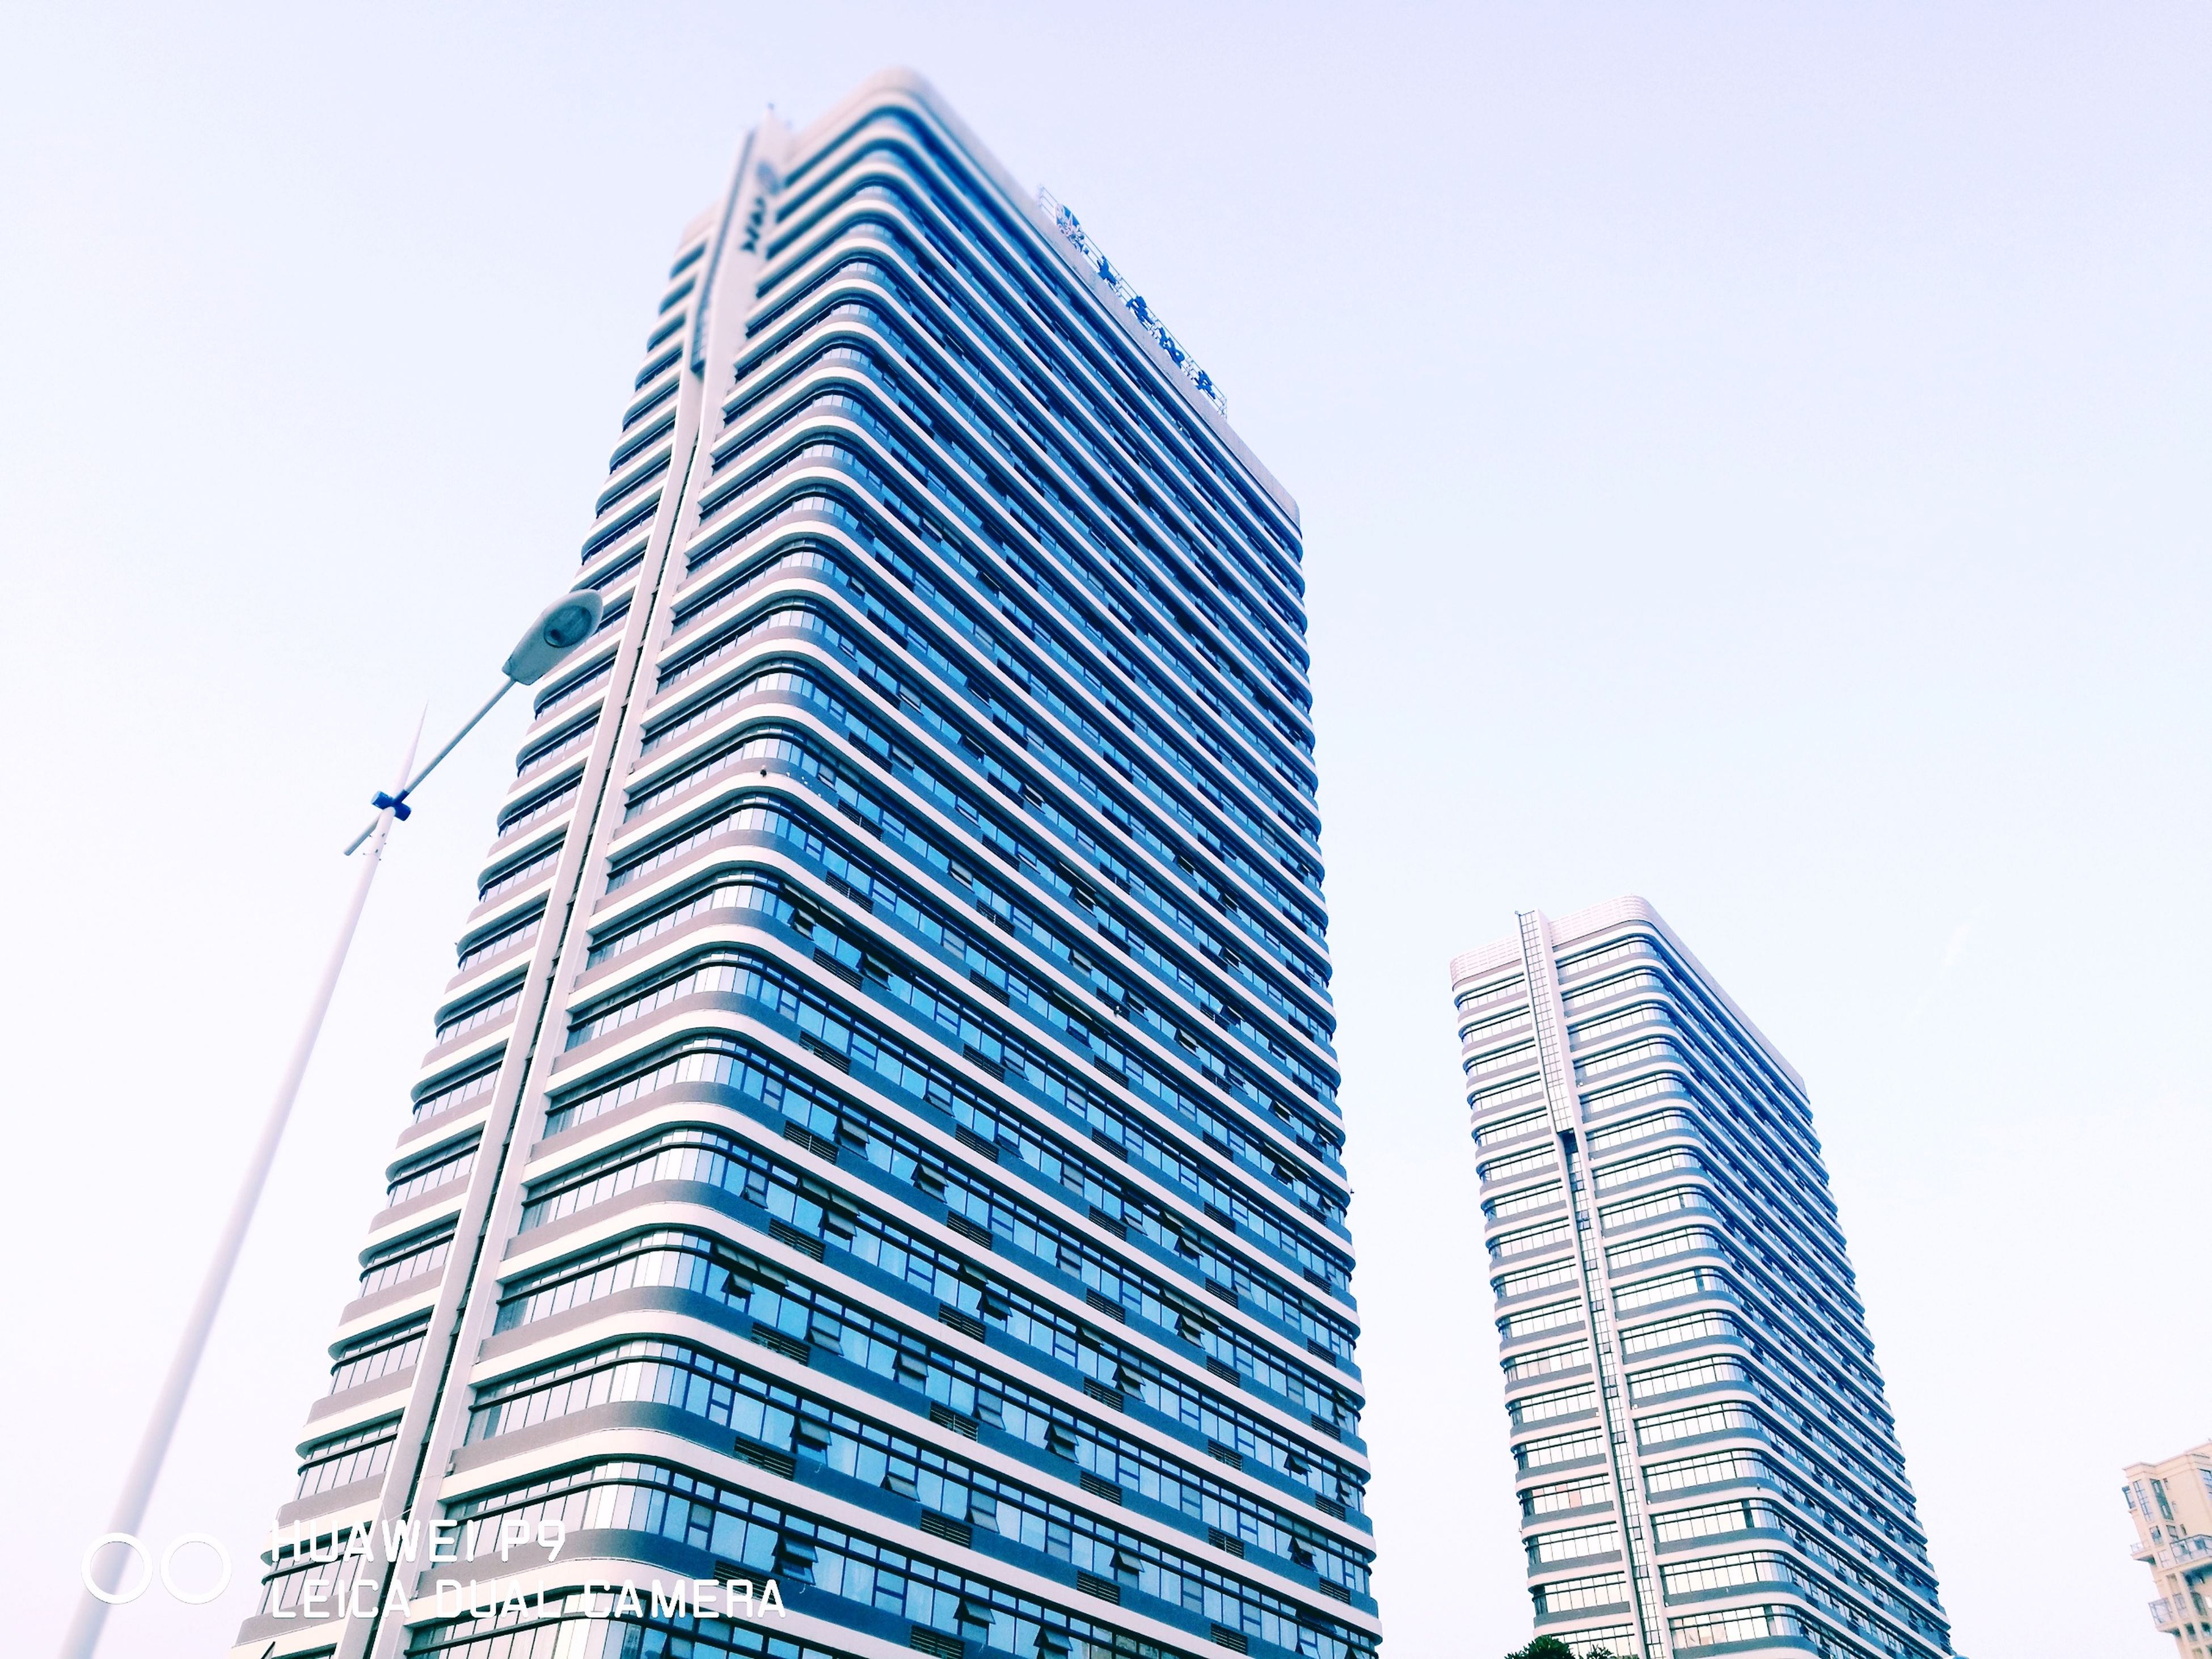 low angle view, architecture, building exterior, skyscraper, built structure, city, modern, clear sky, outdoors, no people, day, sky, connection, technology